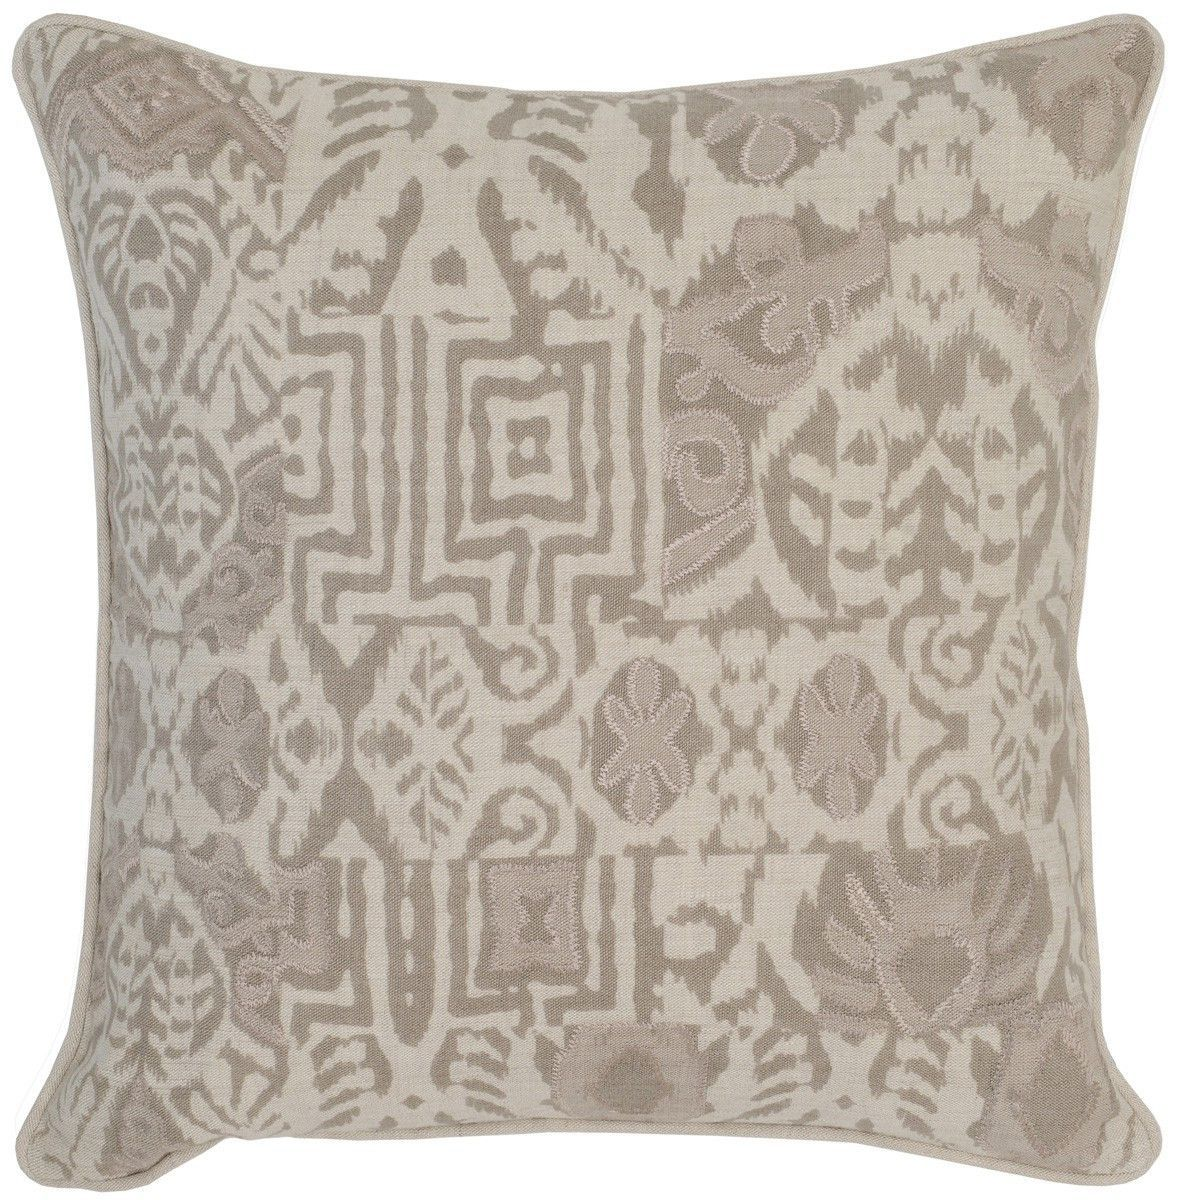 Leon ivorypebble x pillow design by villa home products